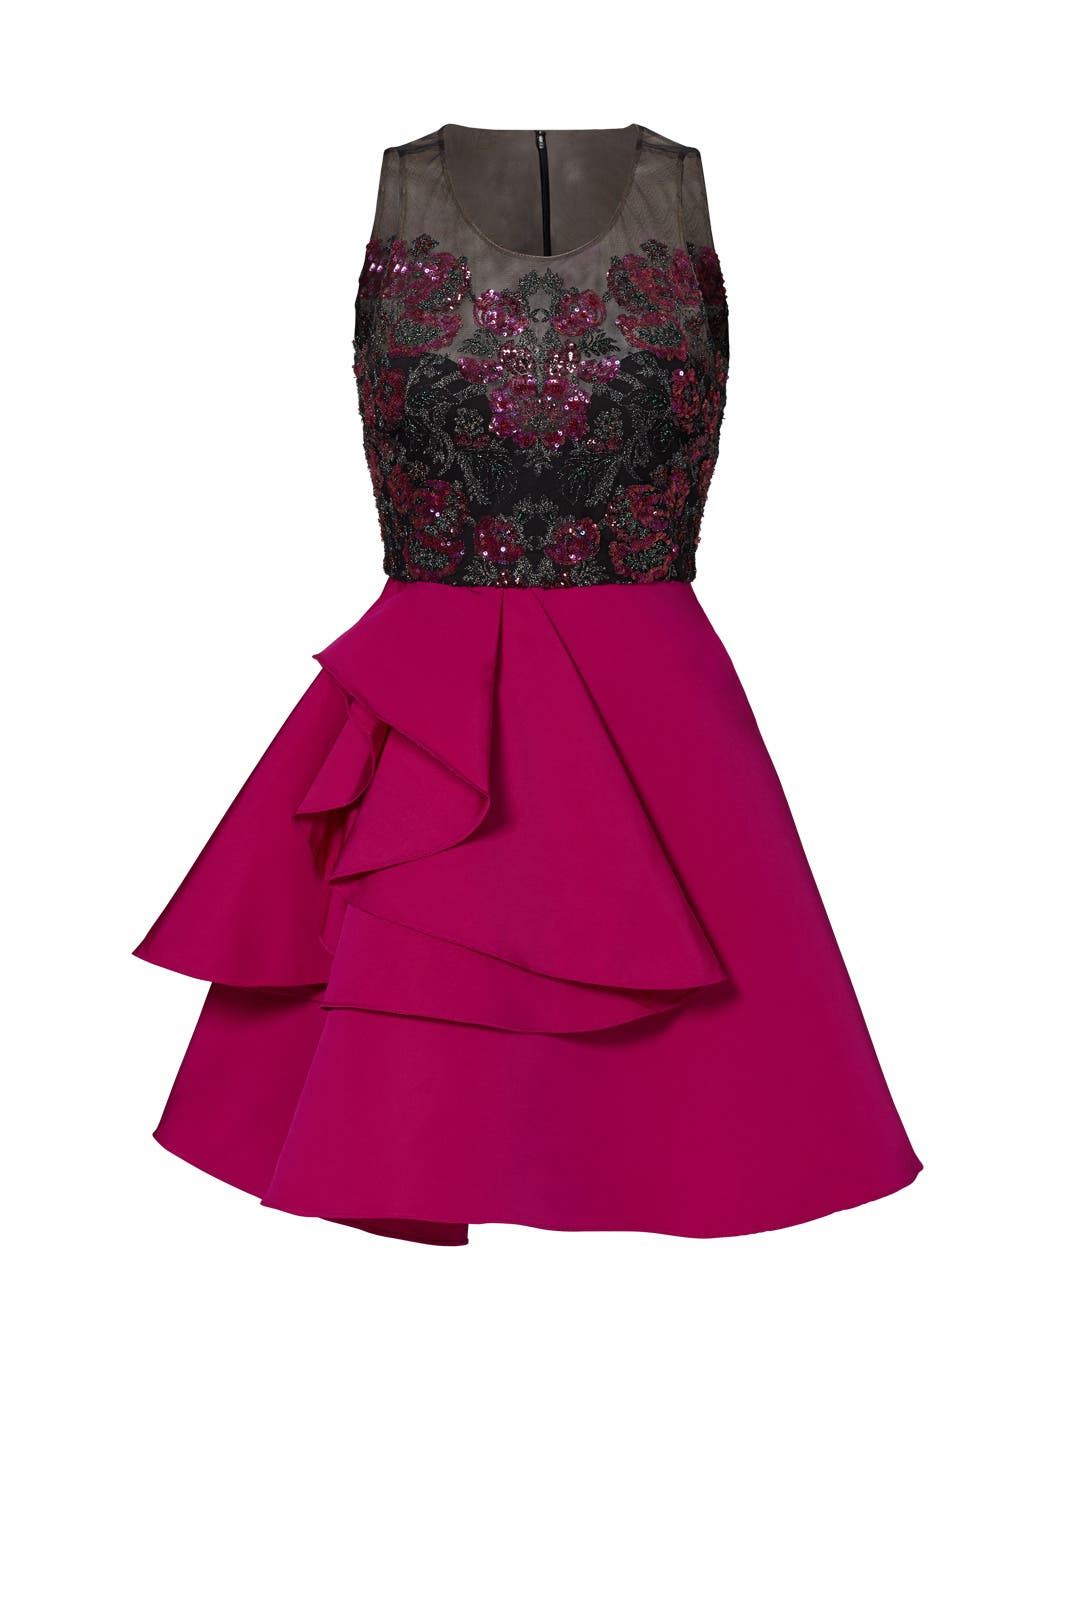 Fuchsia Embroidered Cocktail Dress by Marchesa Notte for $110 - $125 | Rent  the Runway